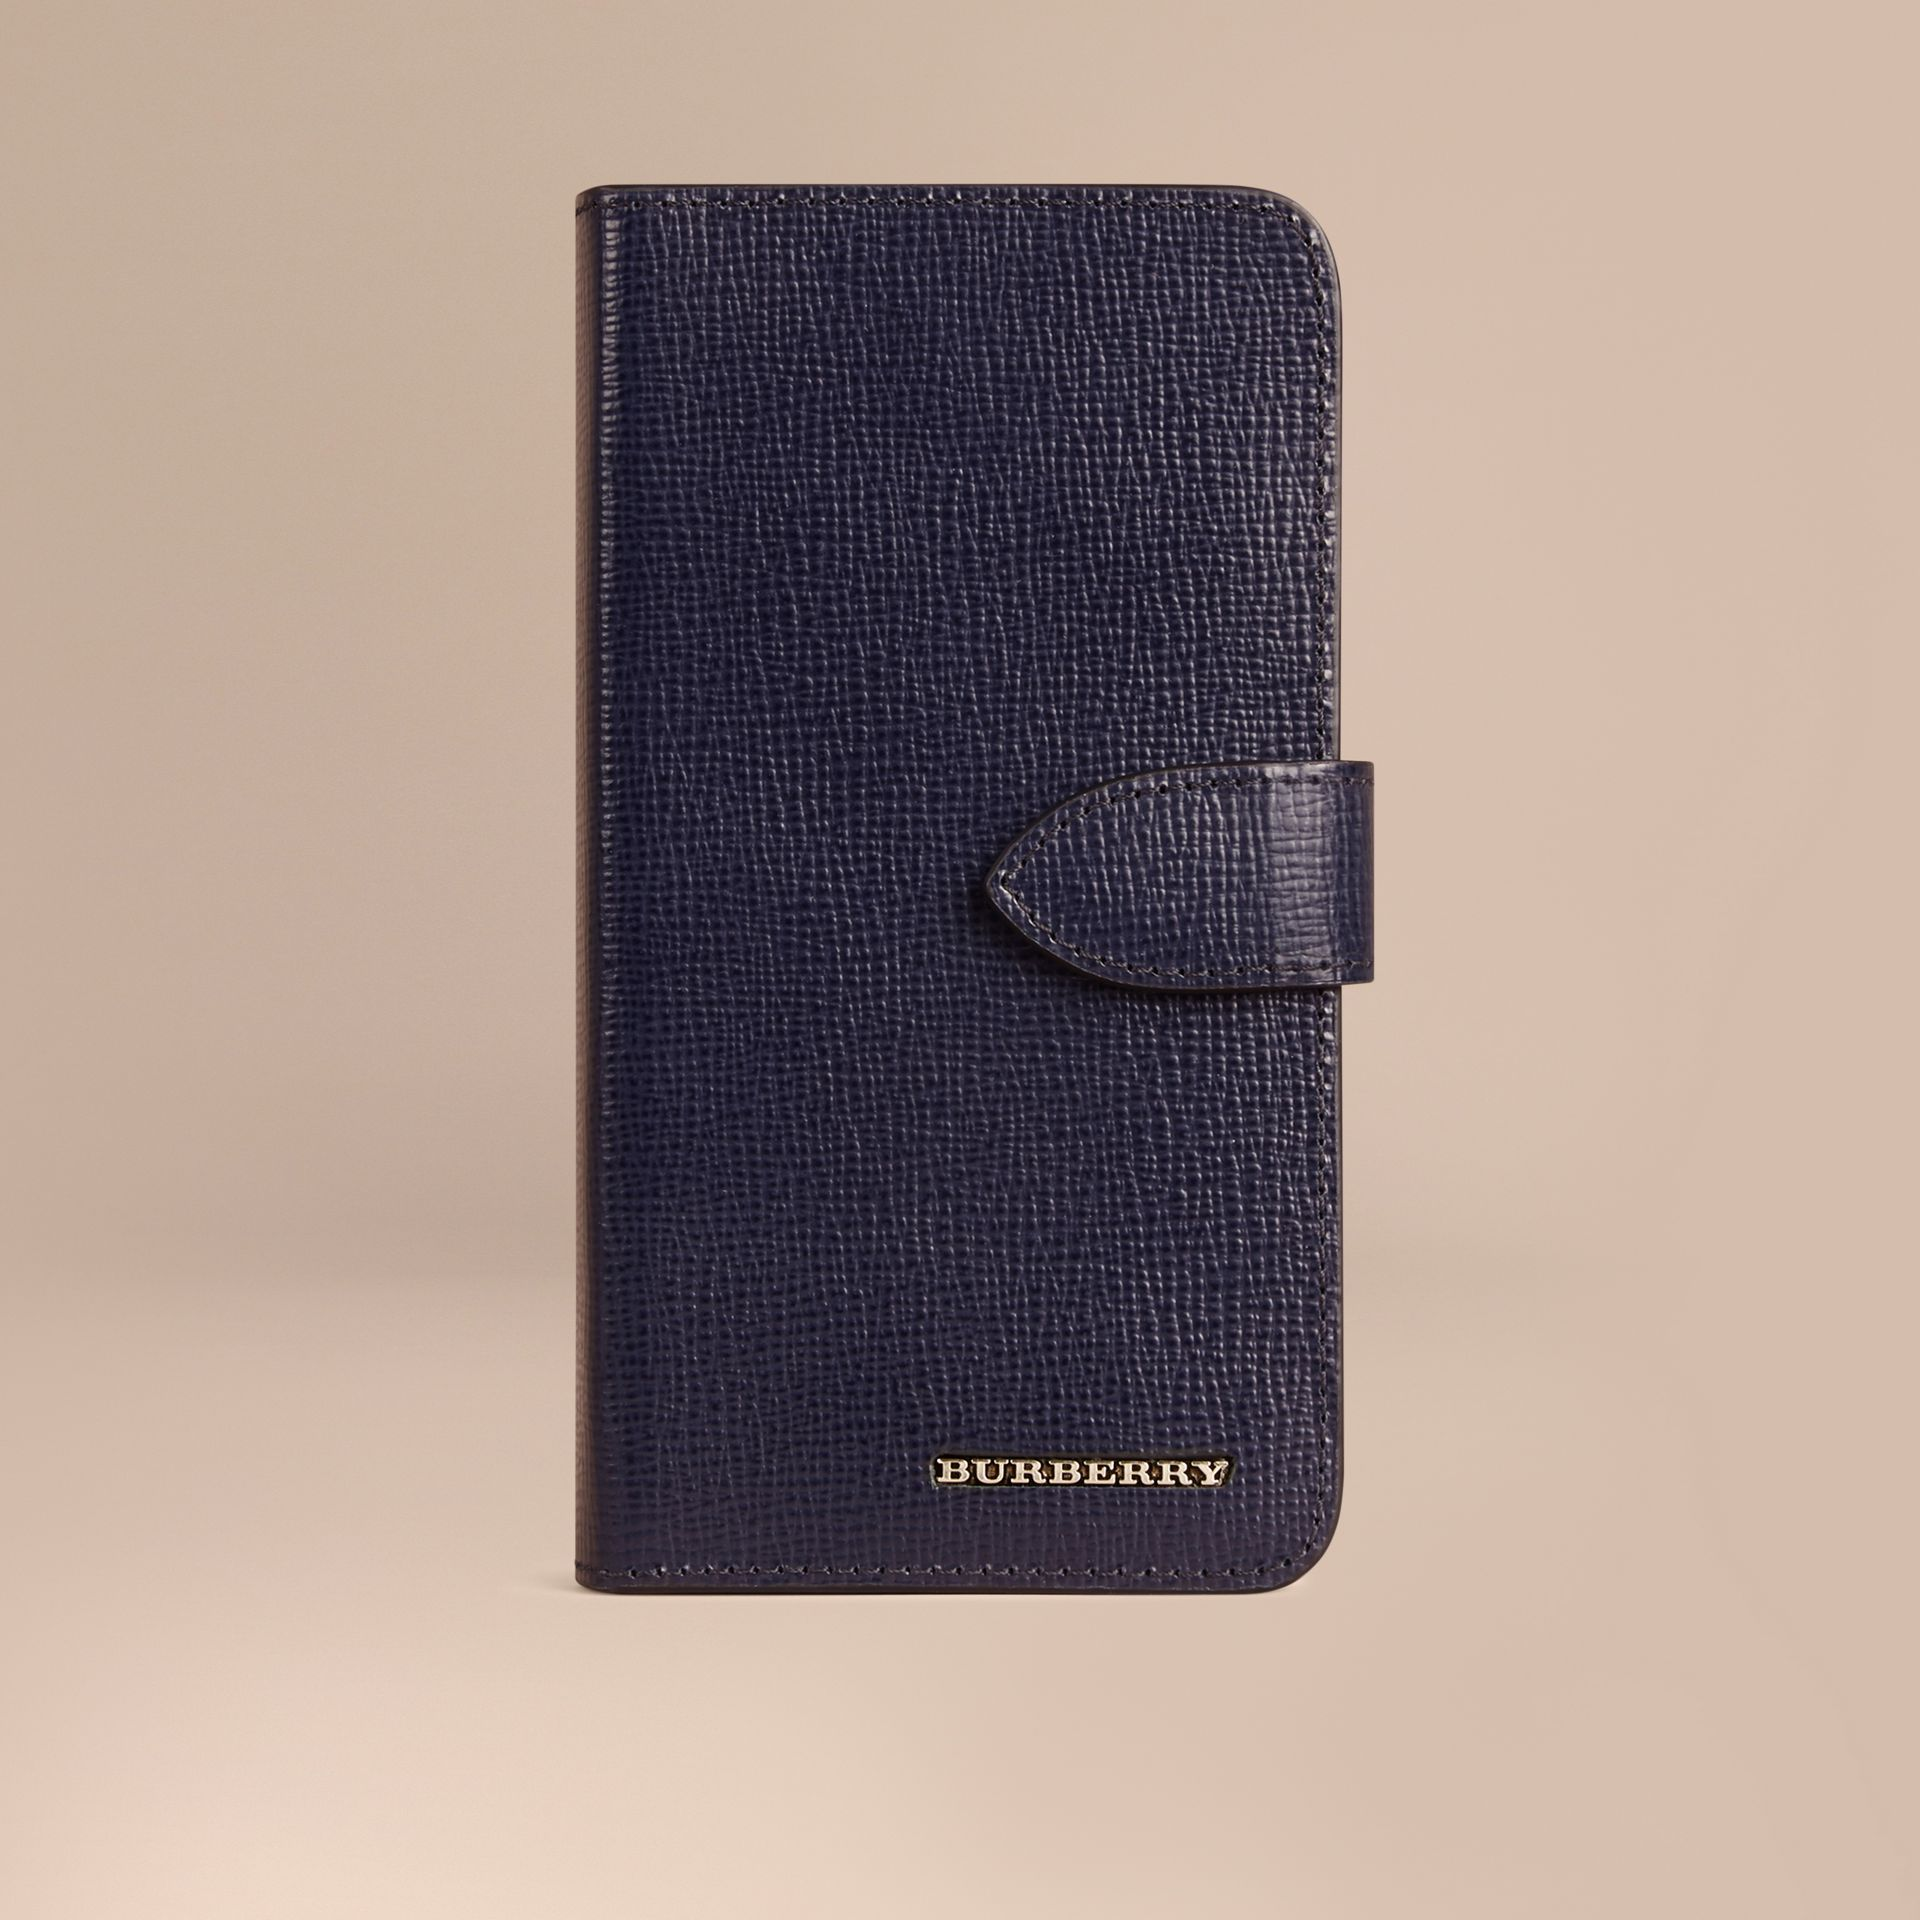 Navy scuro Custodia a libro in pelle London per iPhone 6 Navy Scuro - immagine della galleria 1